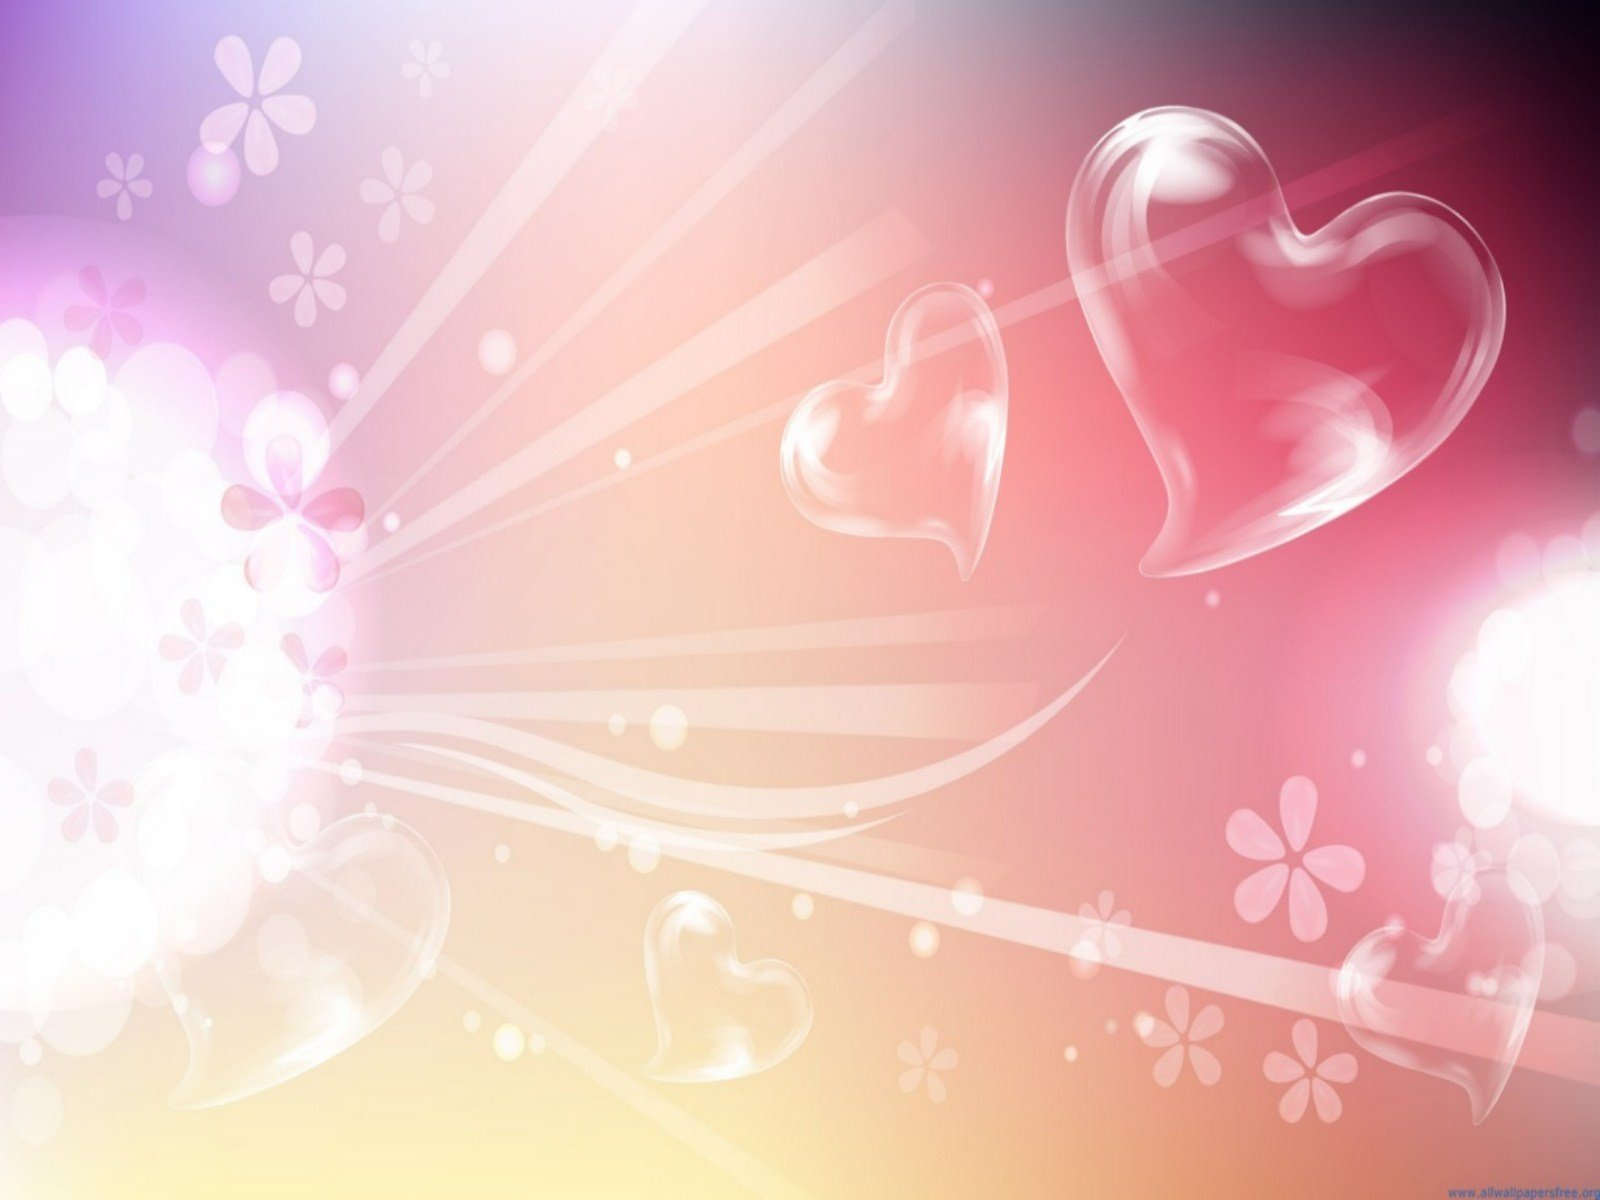 Download HD valentines day screensavers iPhone Wallpapers and 1600x1200